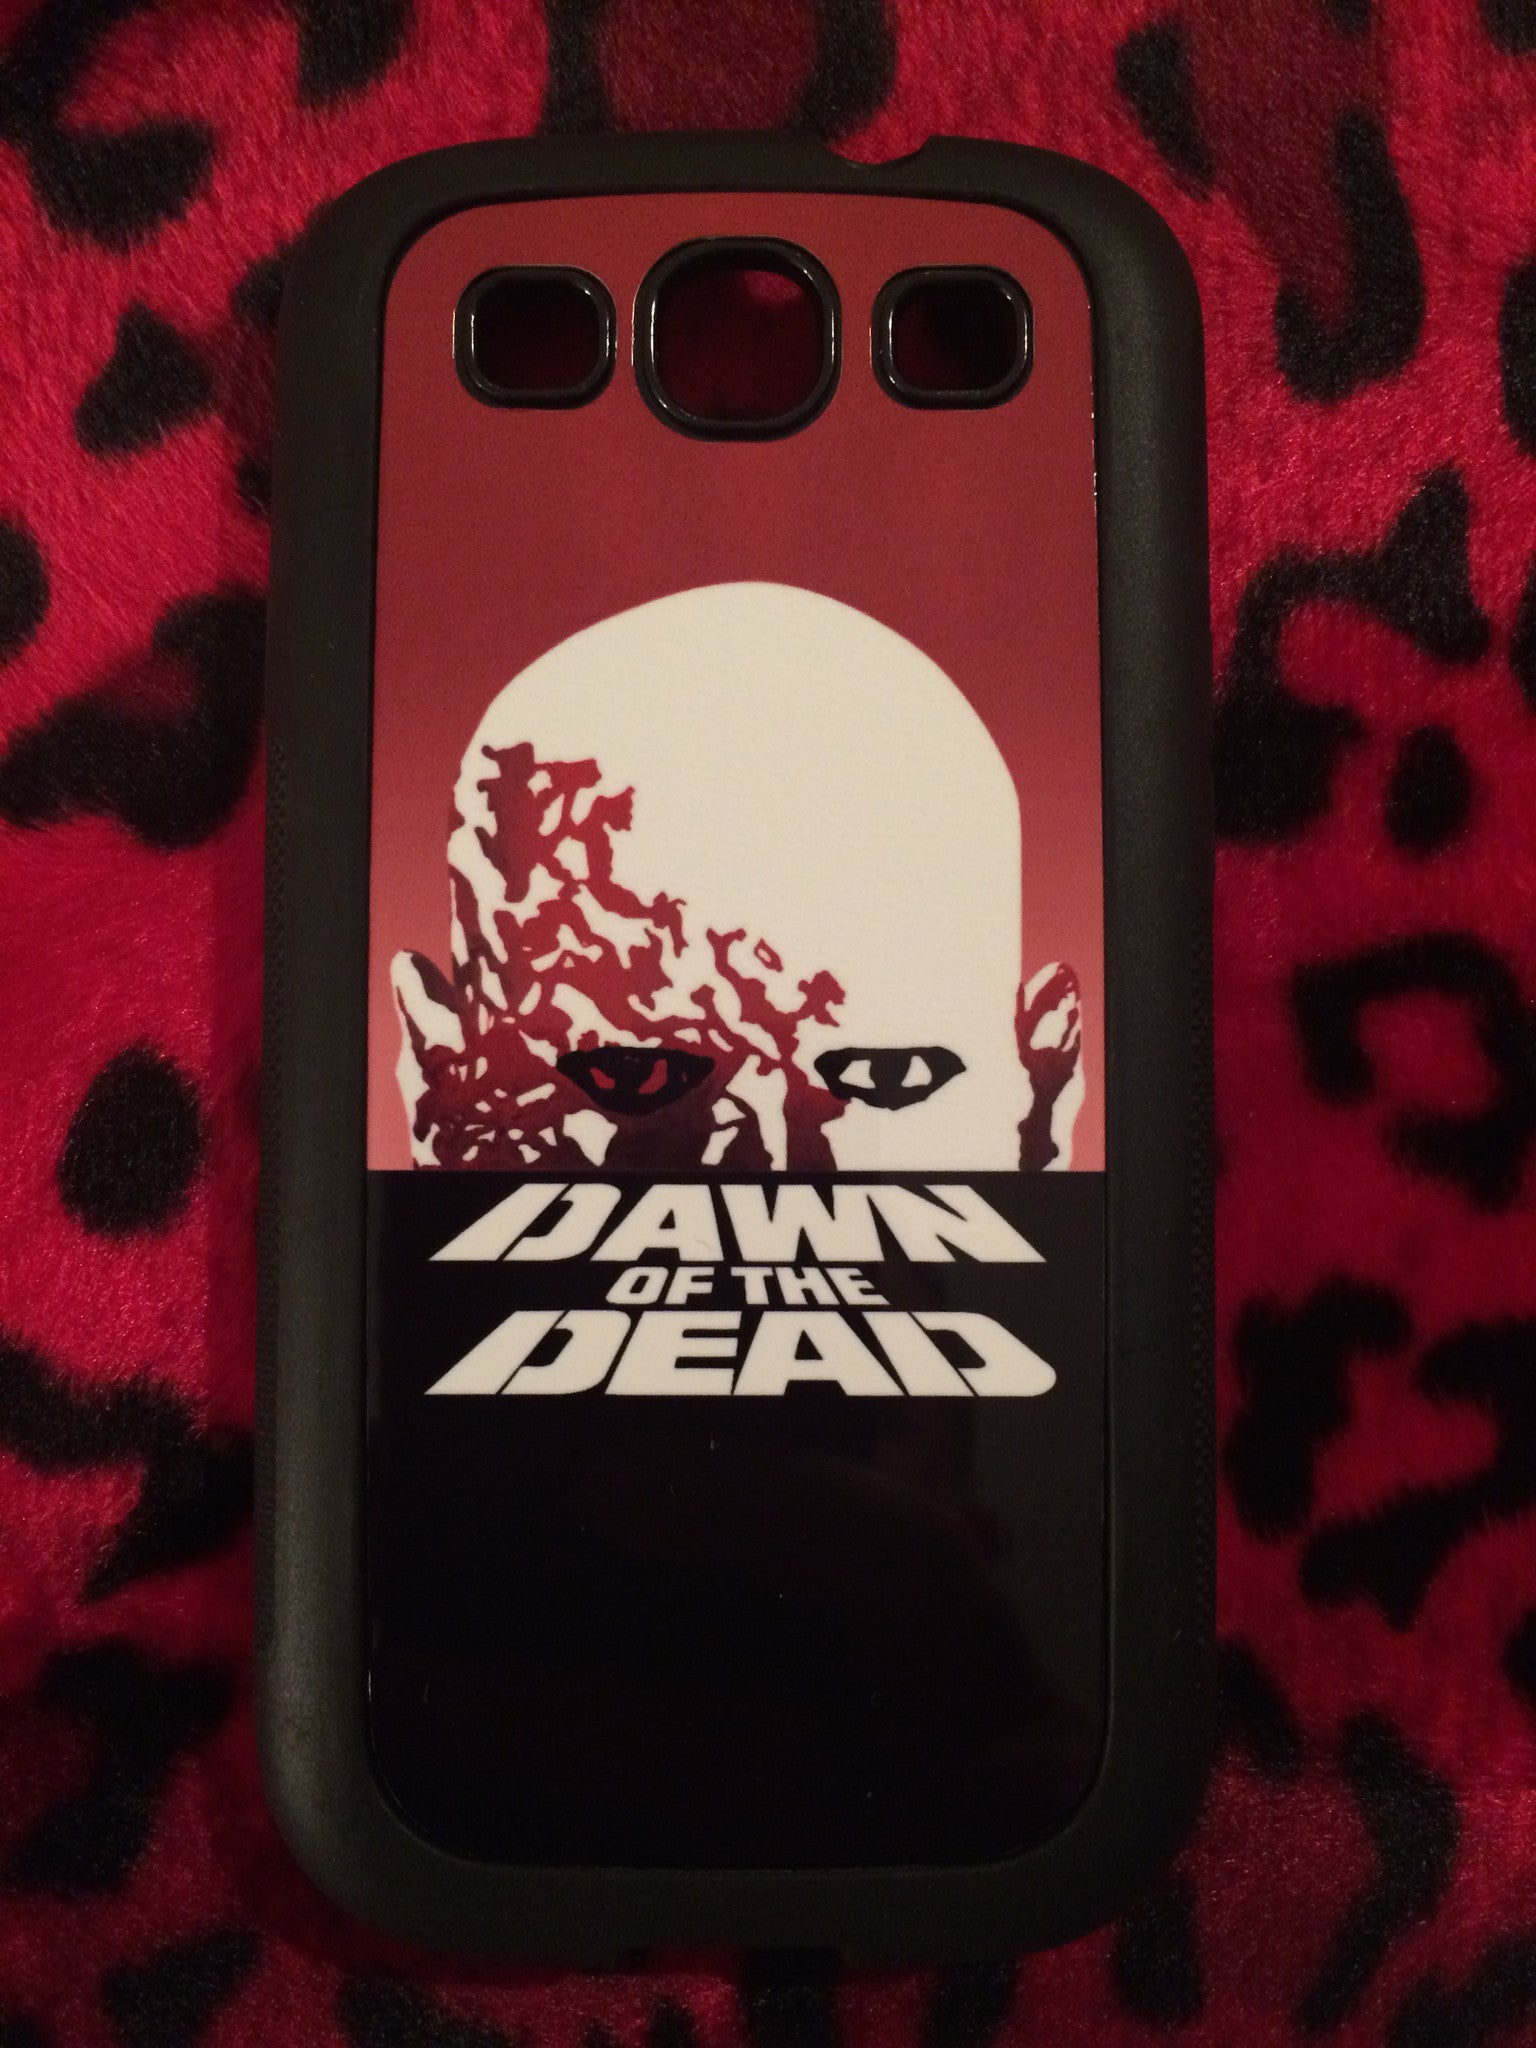 Dawn of the Dead Style A S3 Phone Case